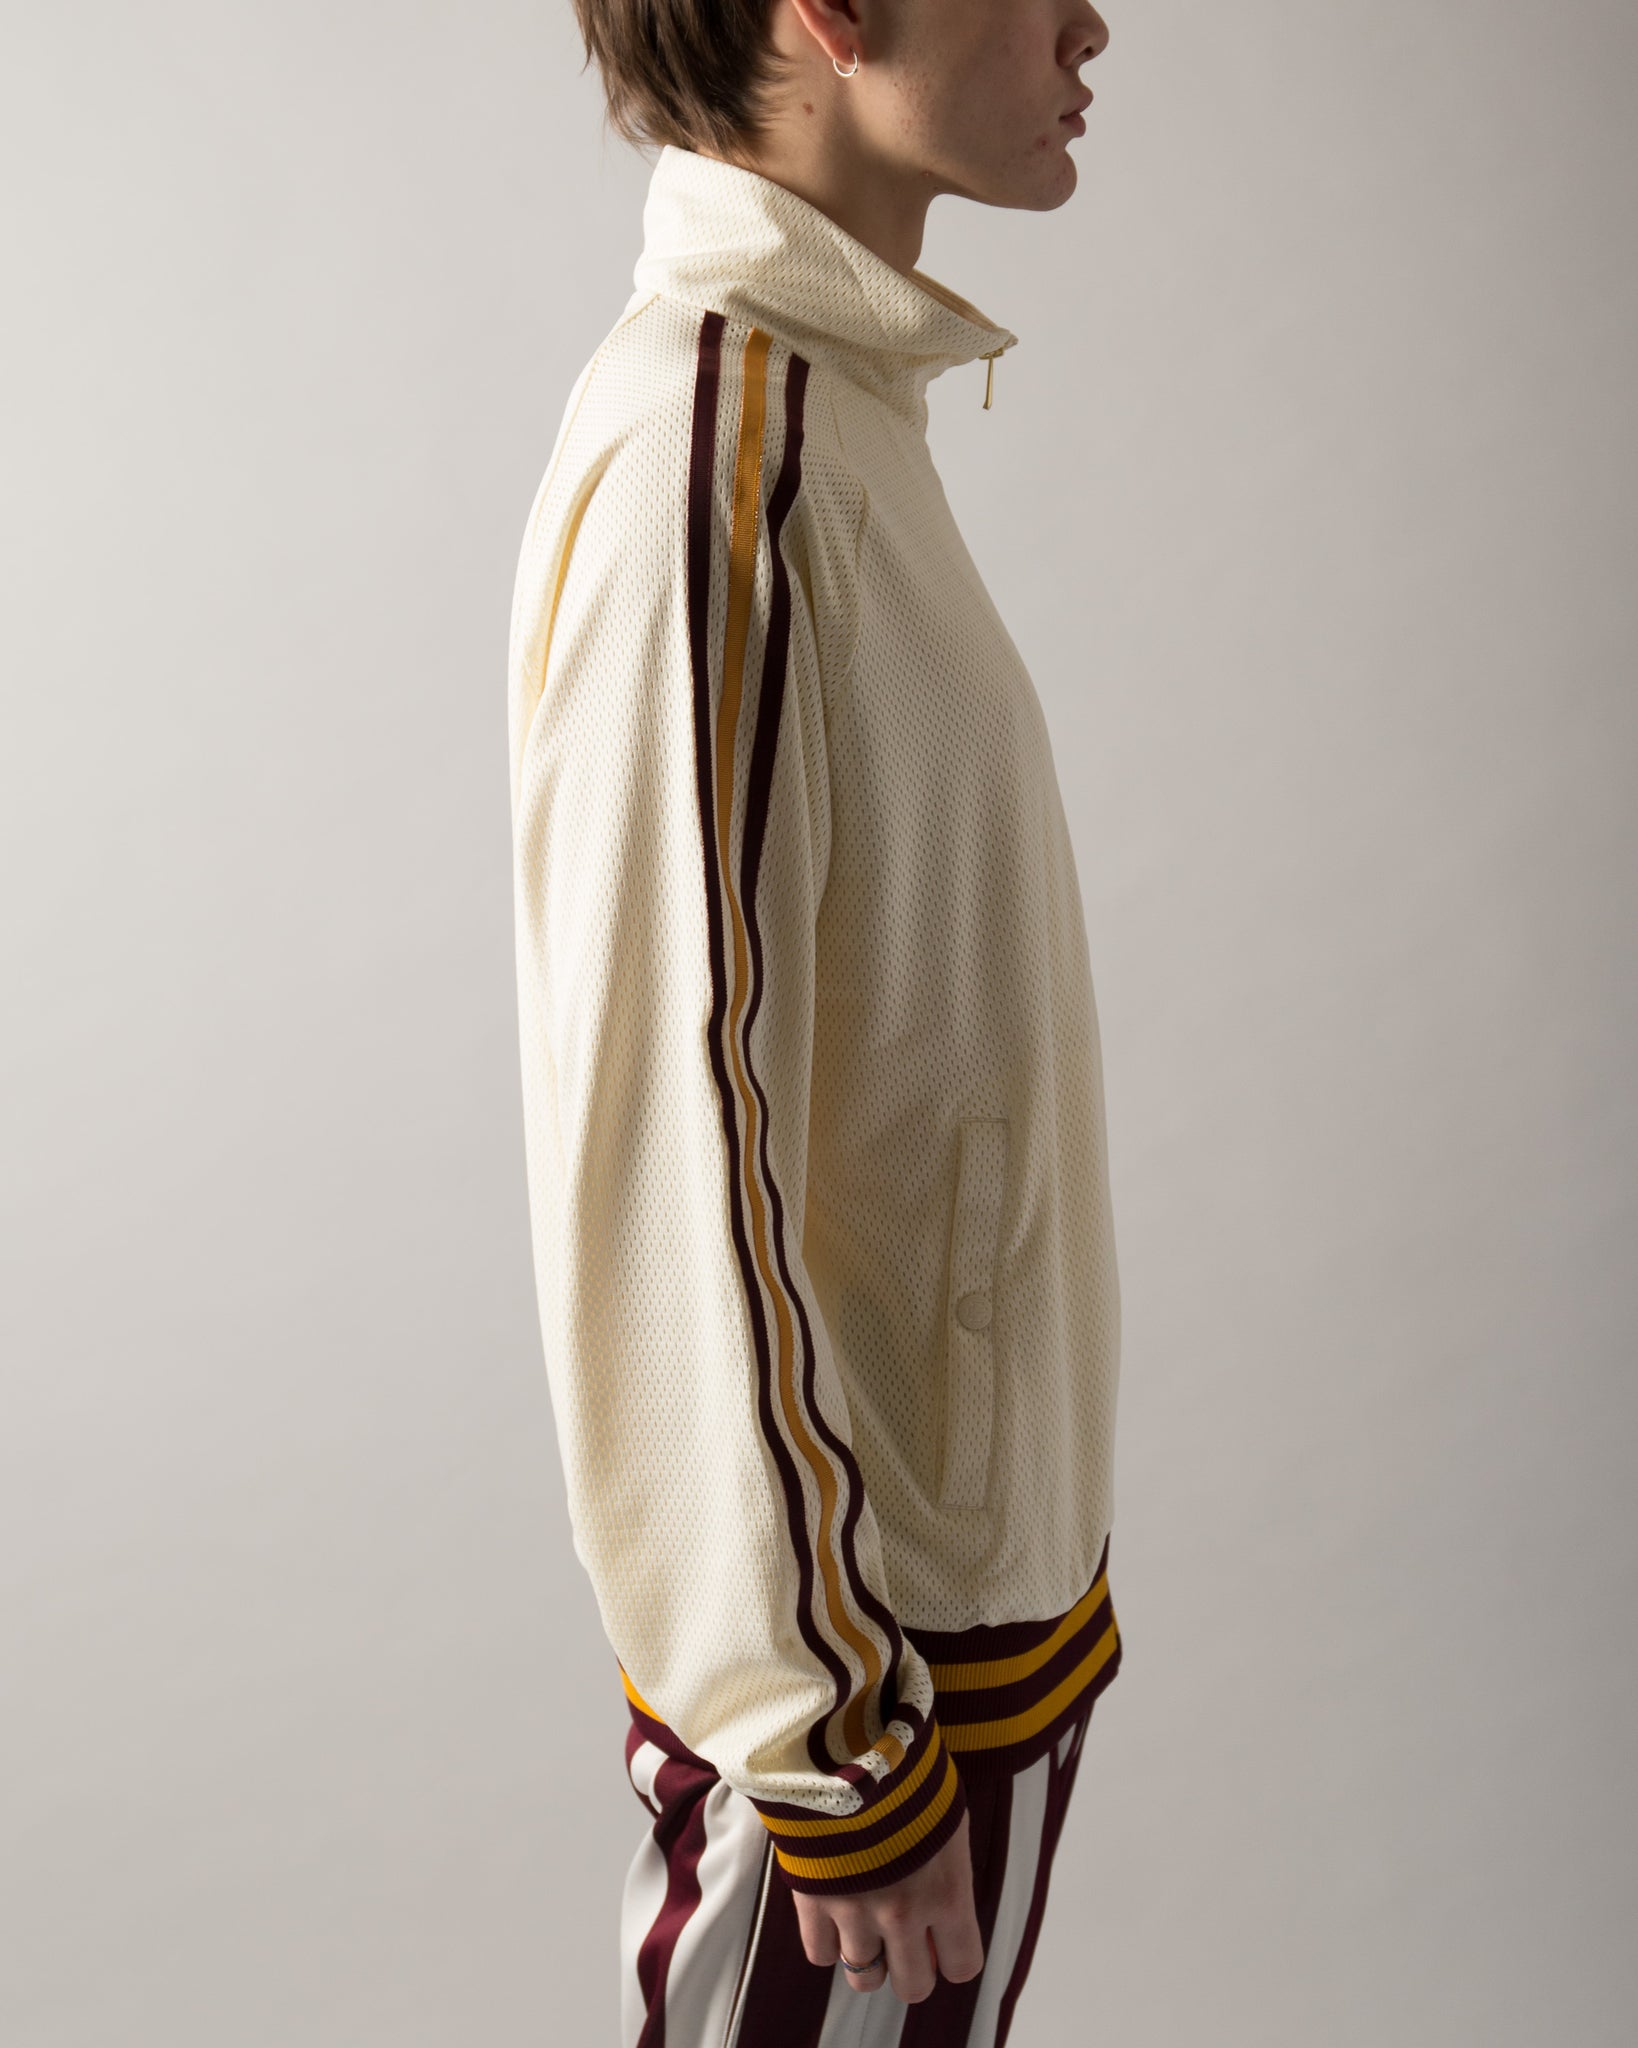 Eric Emanuel Warm Up Track Top White